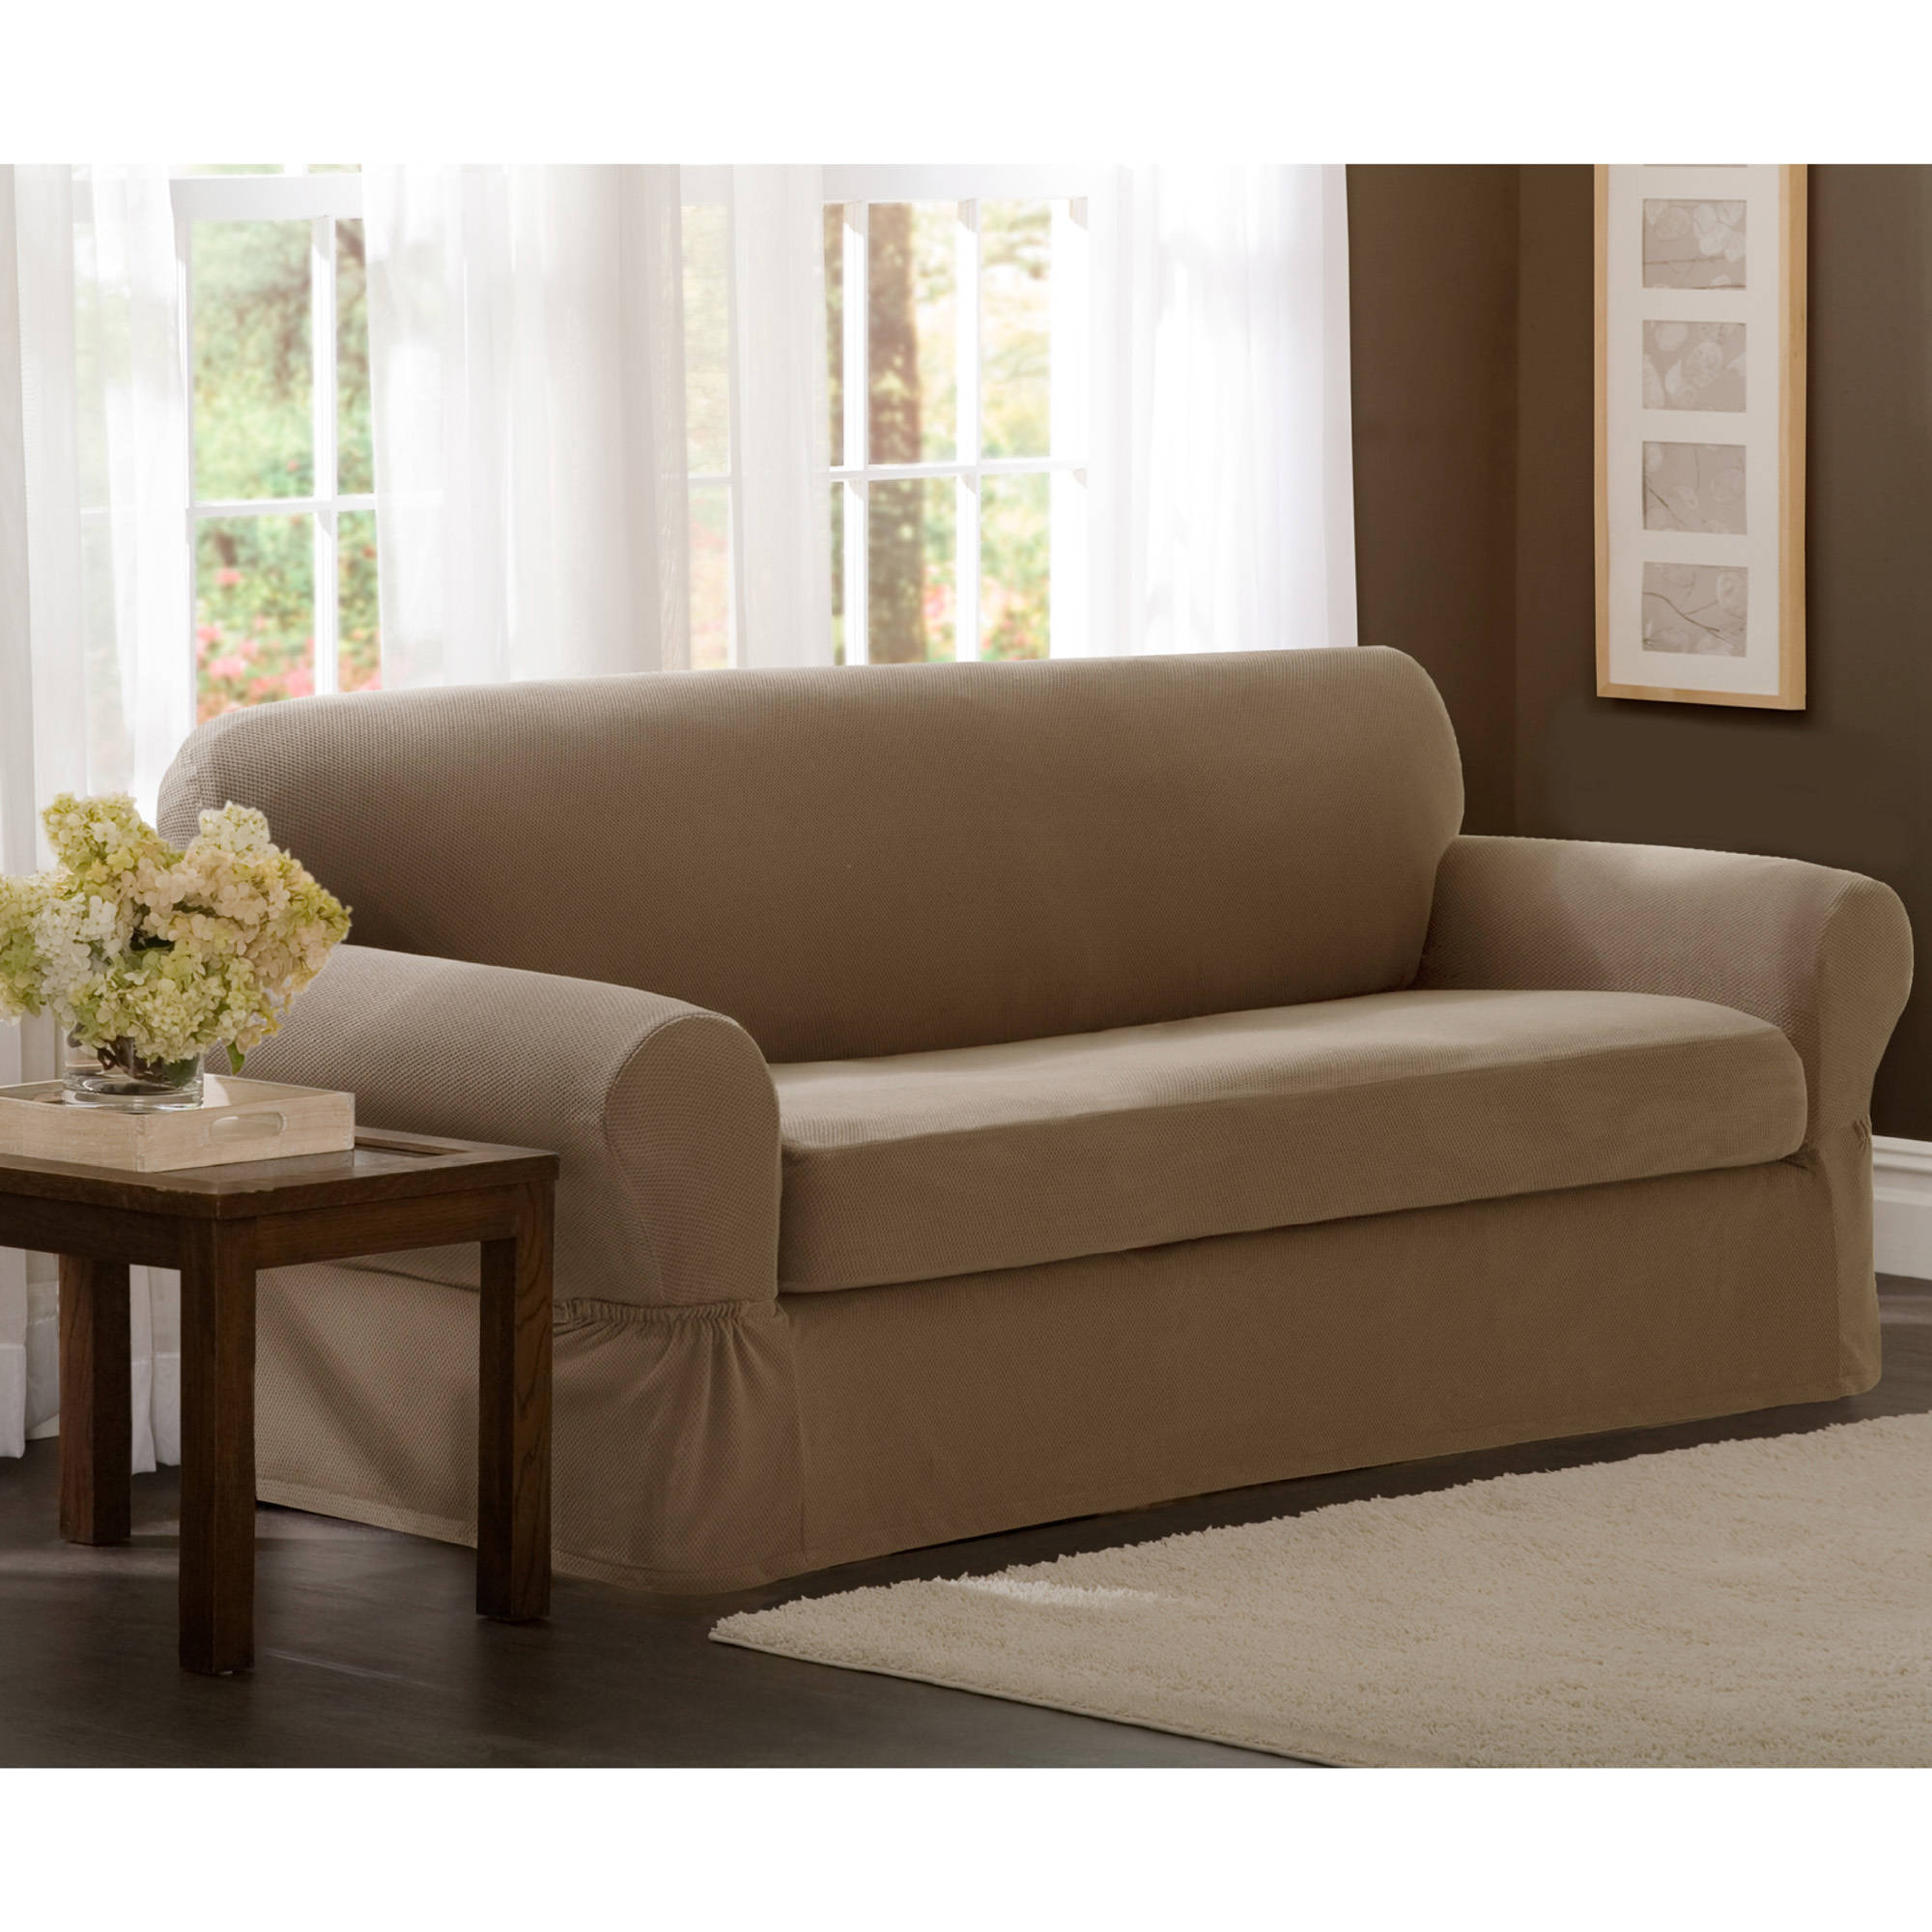 Oversized sofa slipcover couch slipcovers thesofa for Couch und sofa